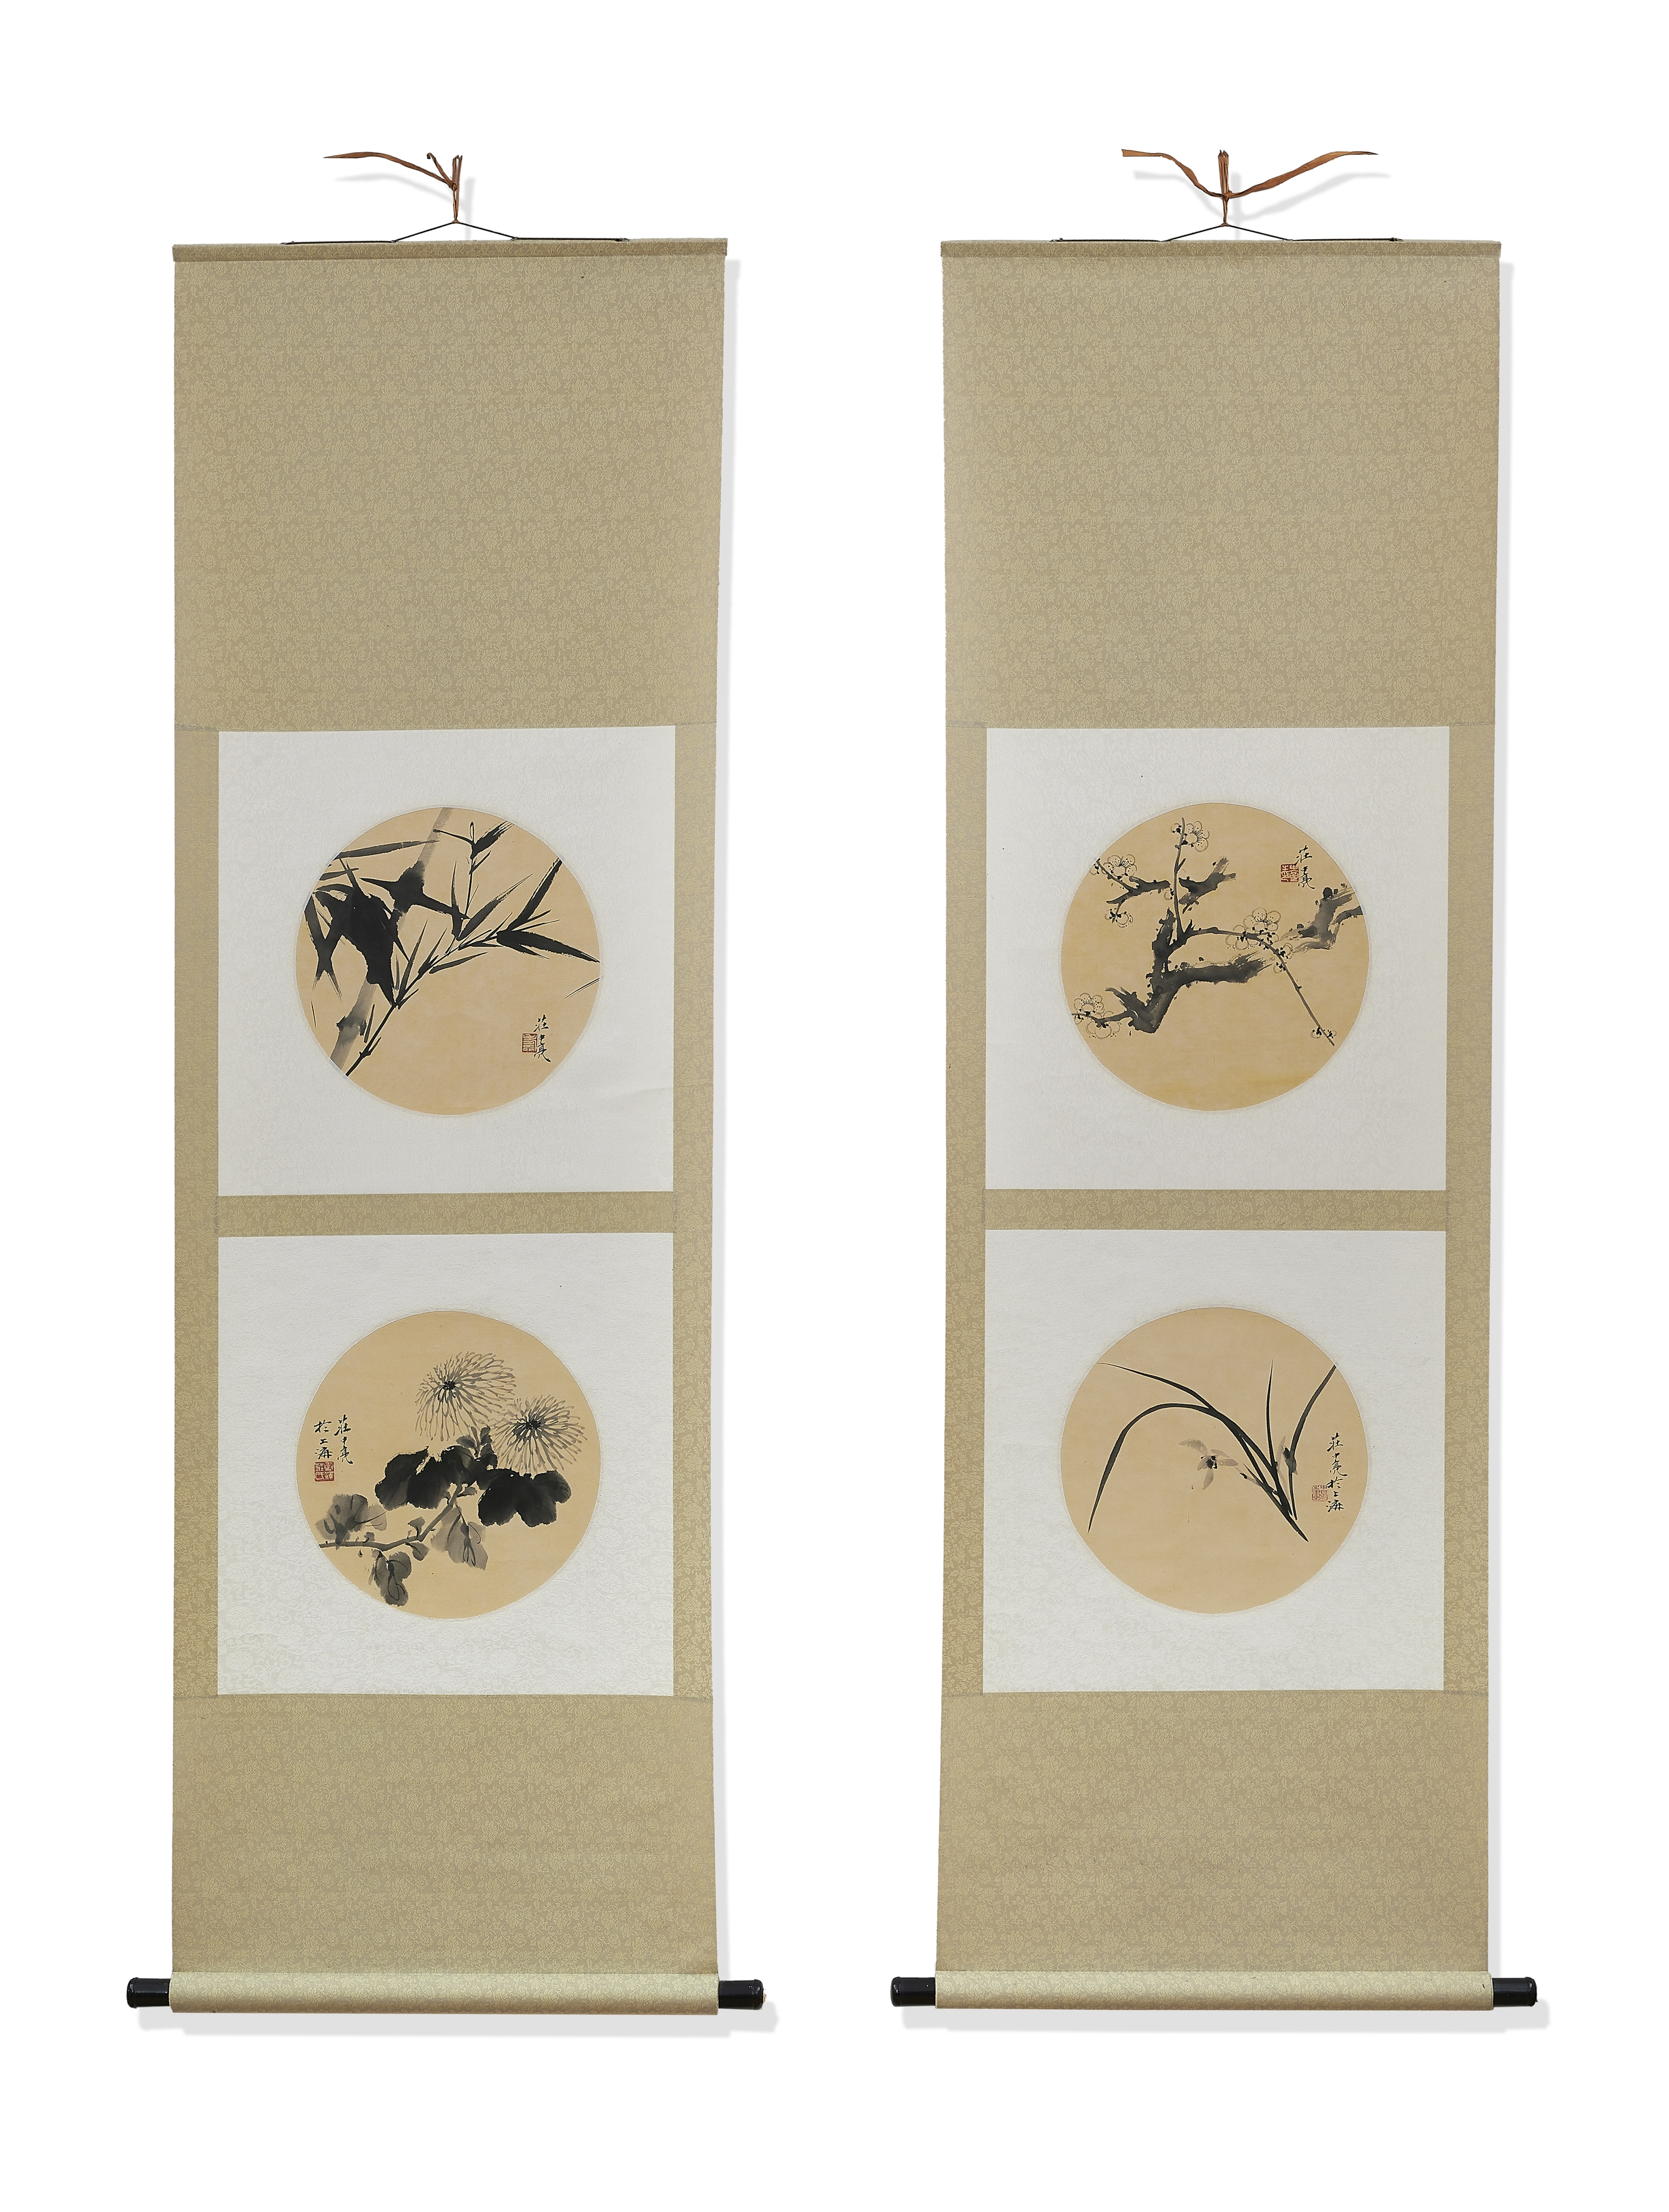 FOUR CIRCULAR FAN PAINTINGS MOUNTED ON TWO HANGING SCROLLS First half 20th century (2)